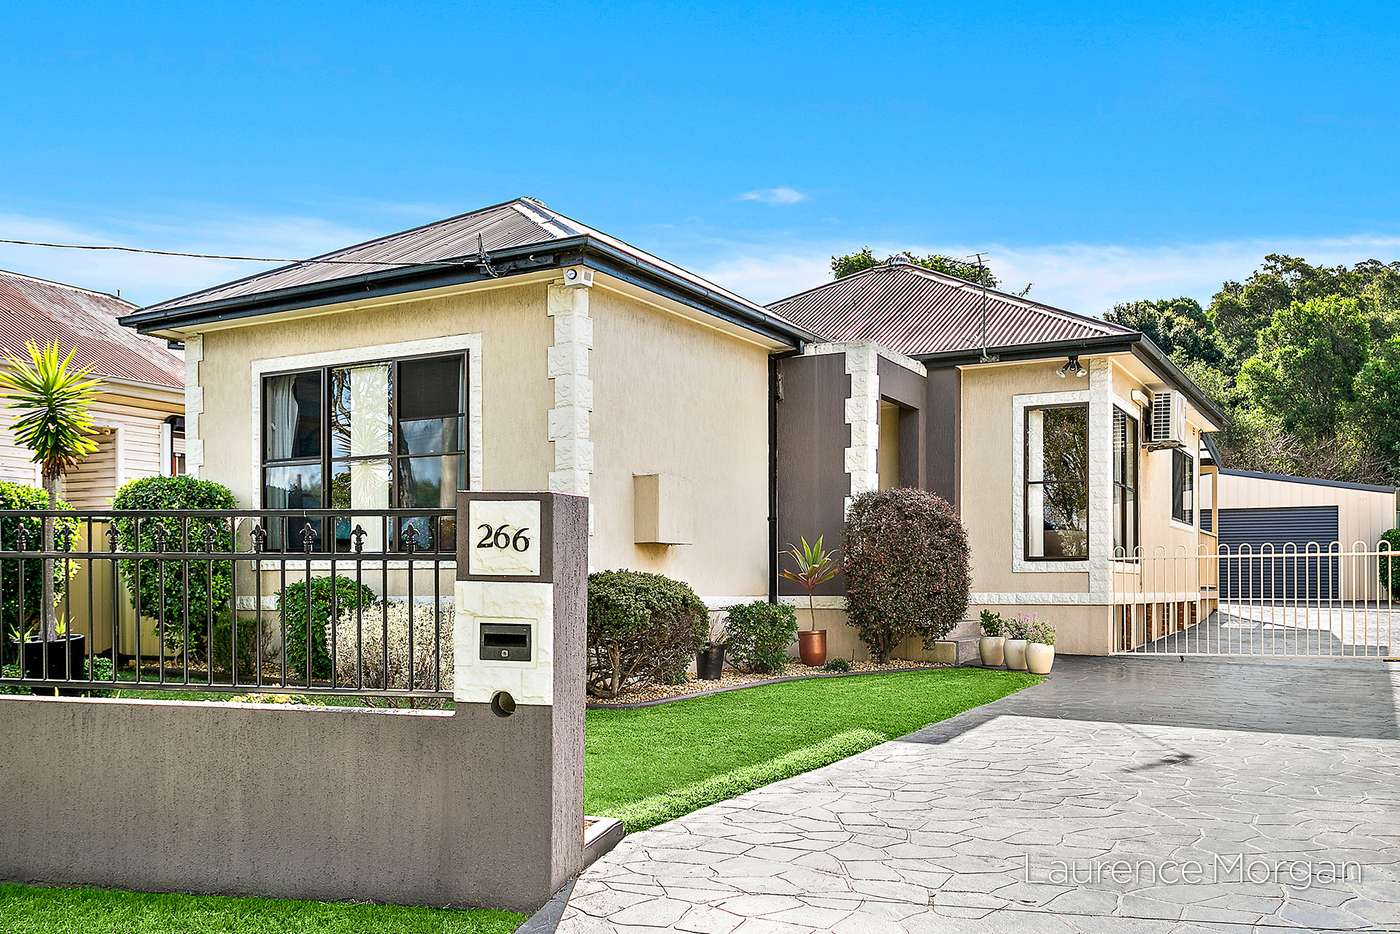 Main view of Homely house listing, 266 Gladstone Avenue, Mount Saint Thomas NSW 2500